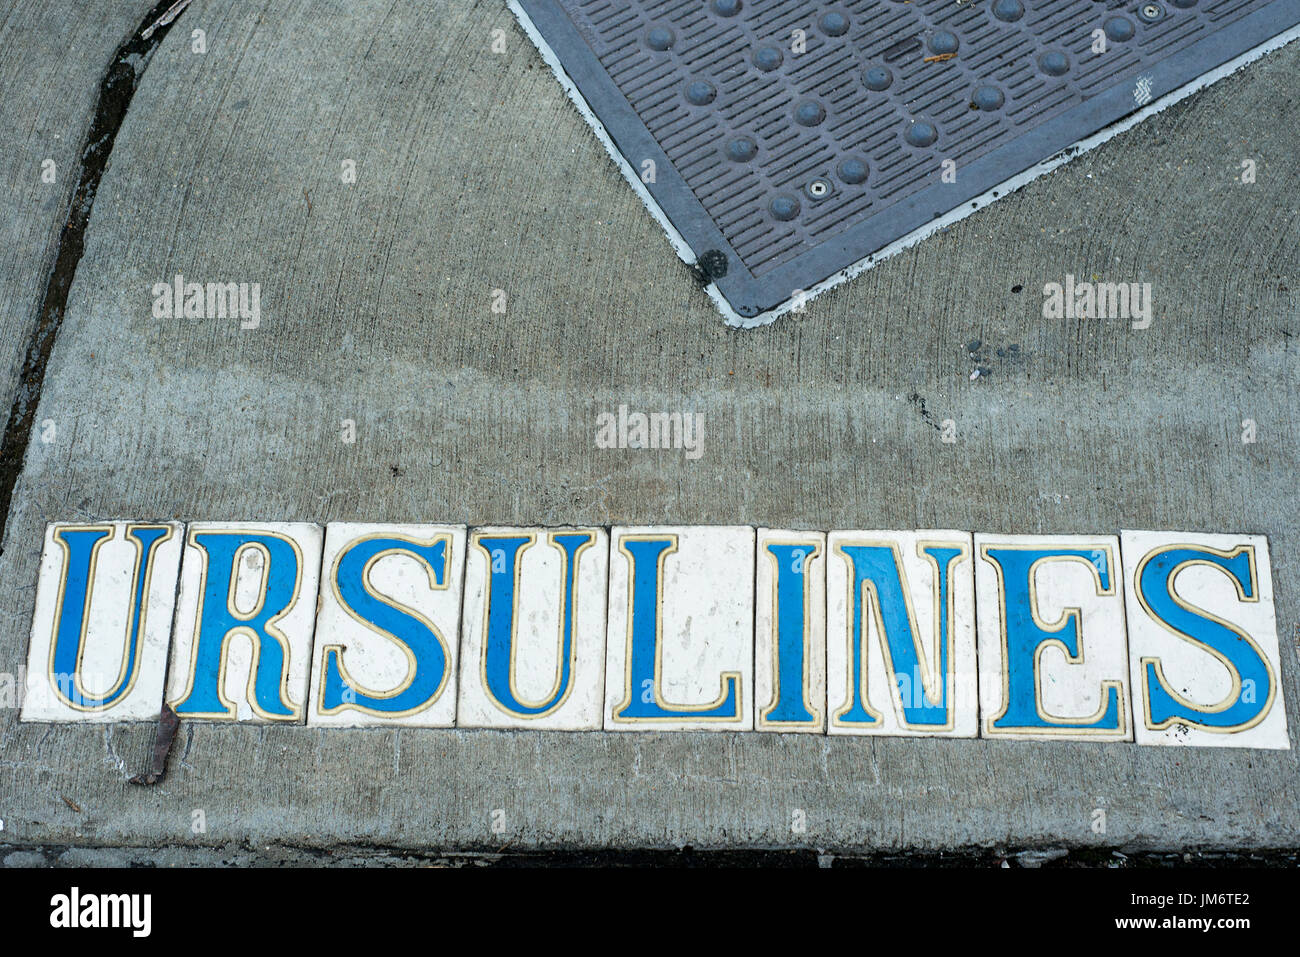 Ceramic tile sign stock photos ceramic tile sign stock images ursulines lettered ceramic tiles spelling out the street name new orleans stock image dailygadgetfo Gallery